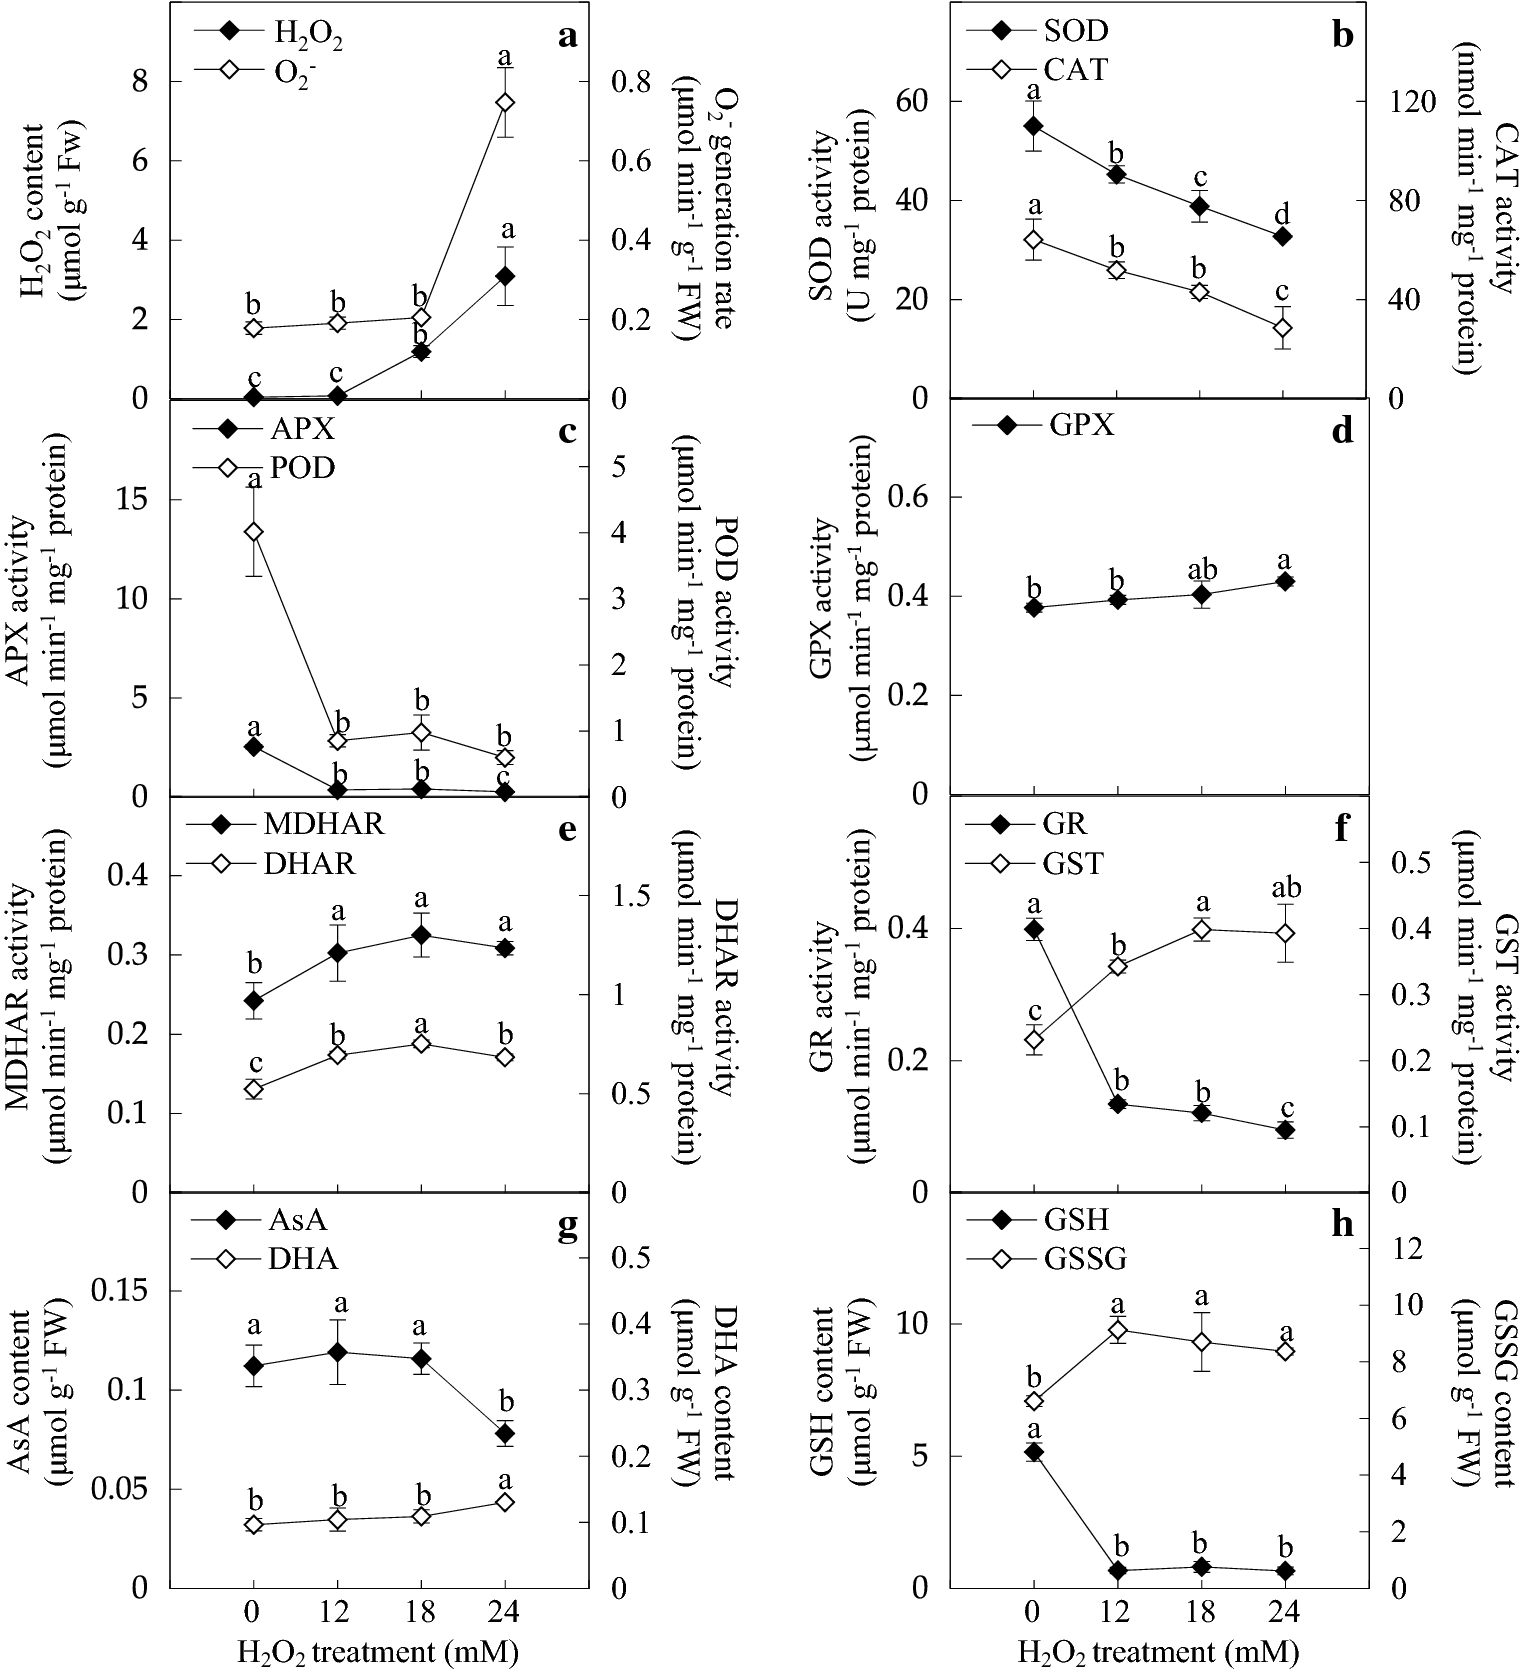 Proteomic discovery of H2O2 response in roots and functional